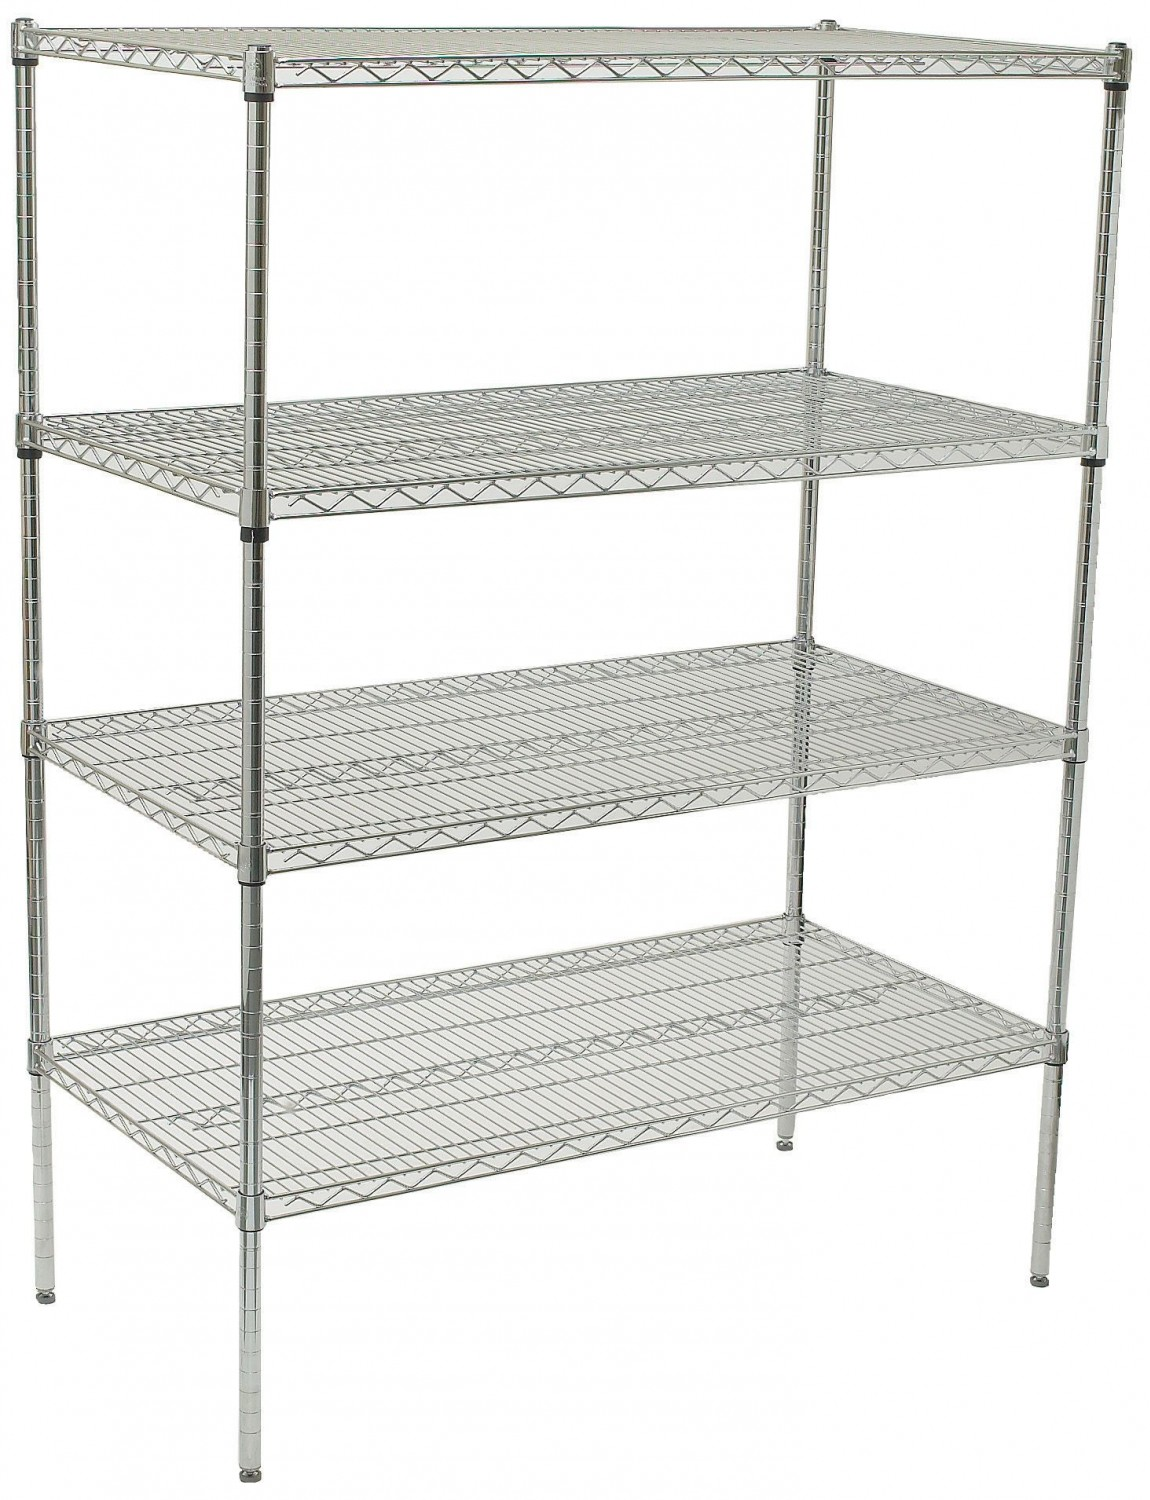 Winco VCS-2448 4-Tier Wire Chrome-Plated Shelving Set 24\